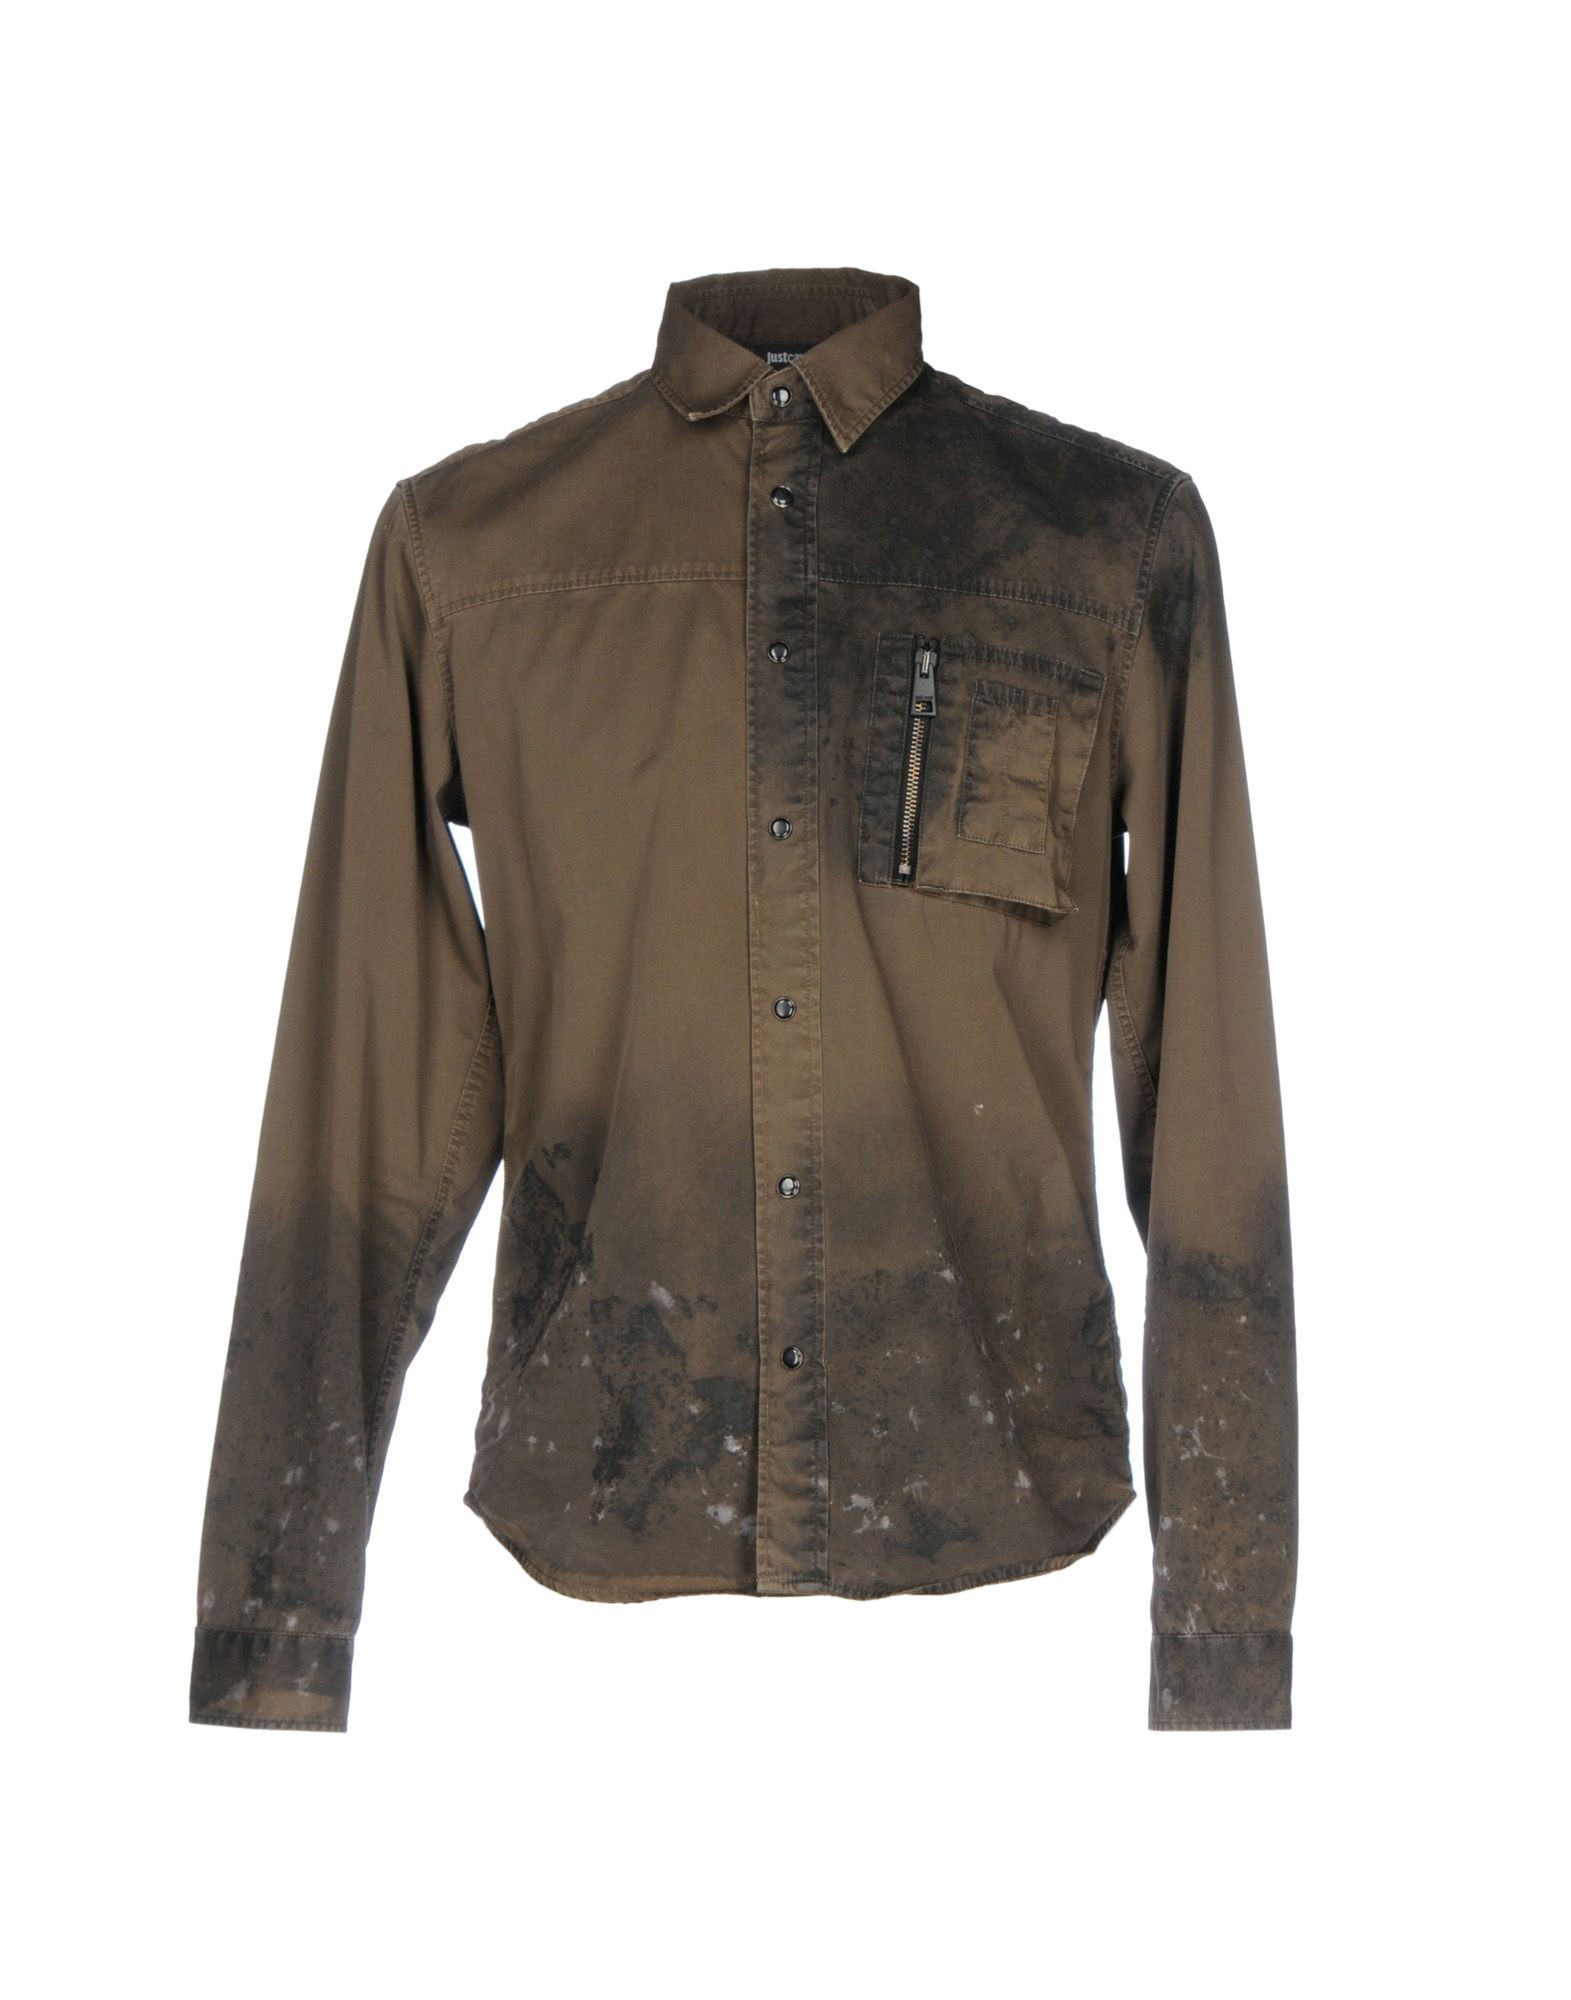 JUST CAVALLI Shirt in Military Green